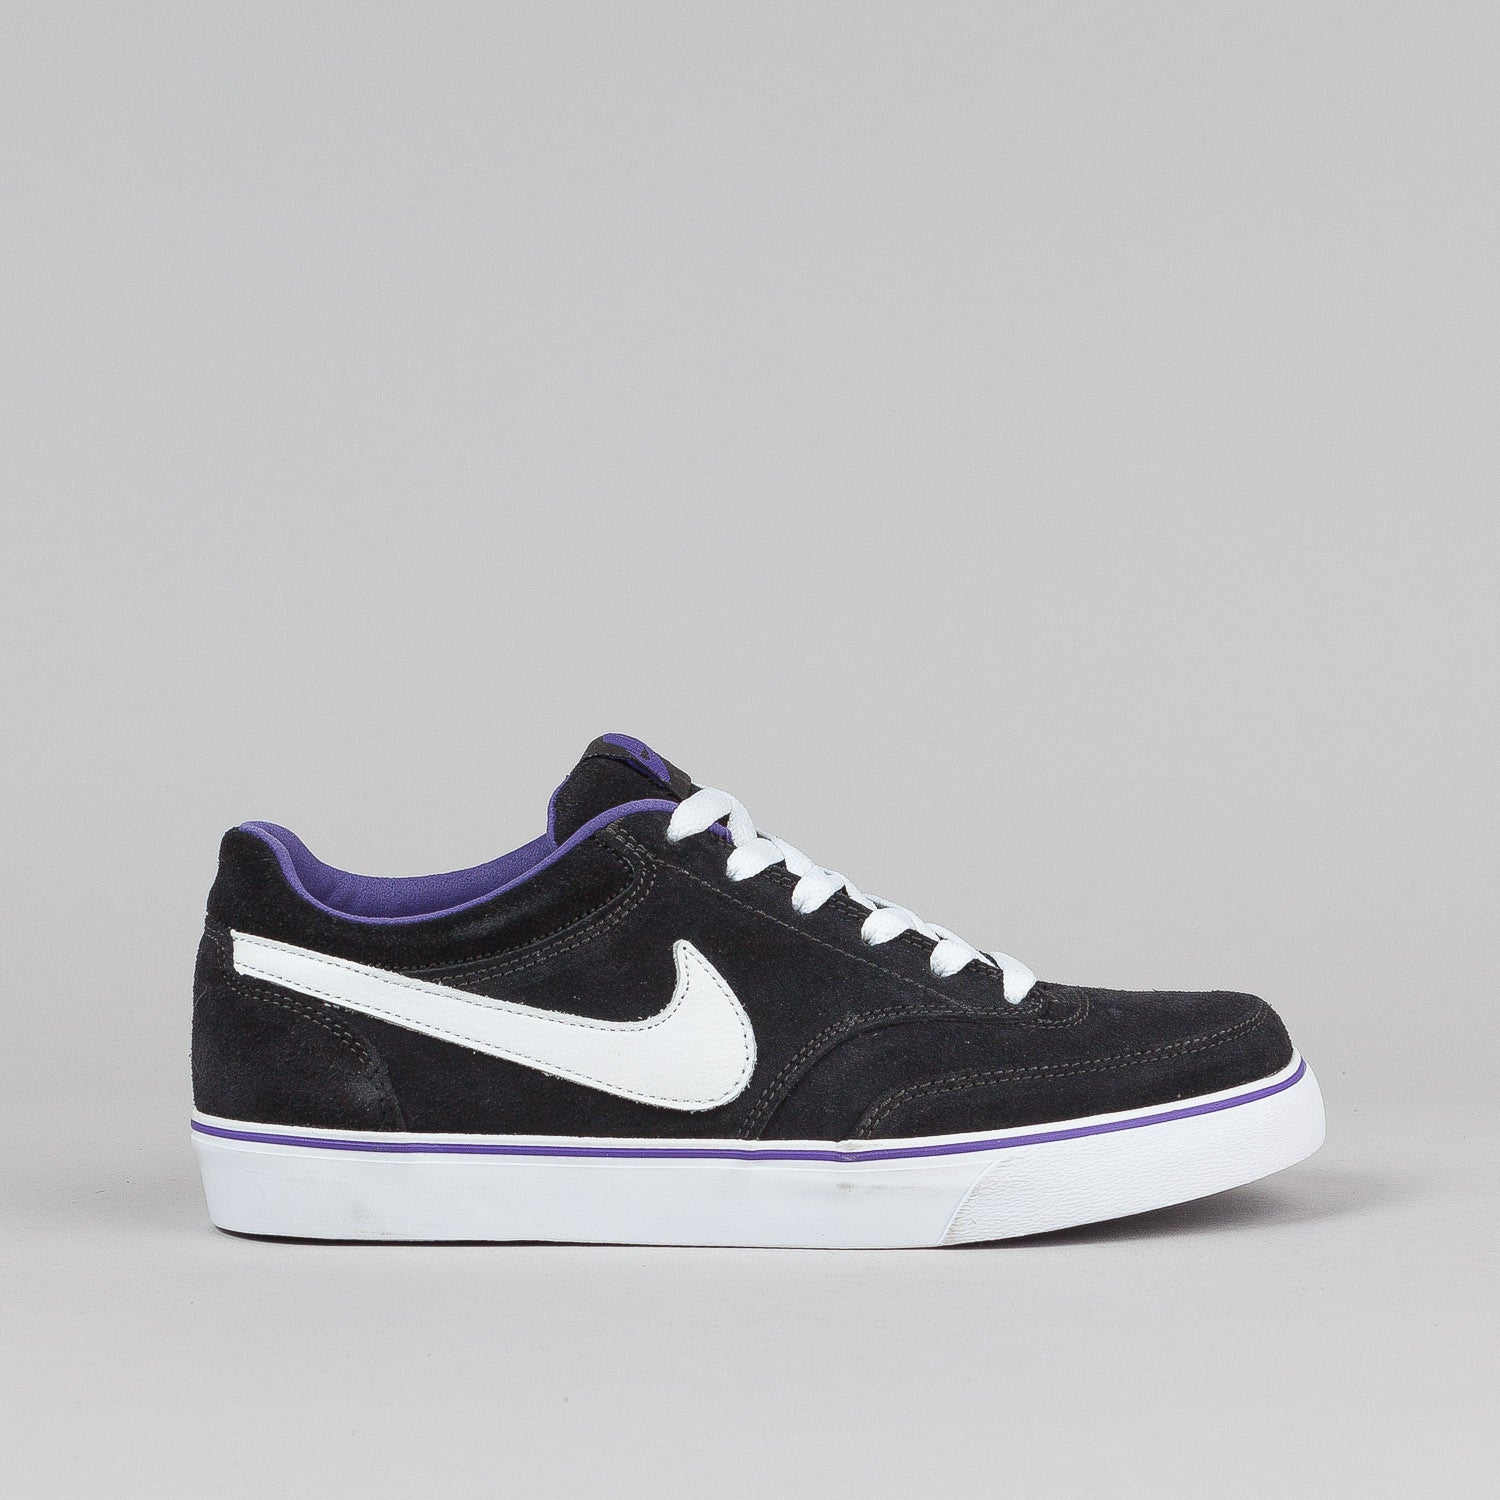 Nike SB Air Harbor Shoes